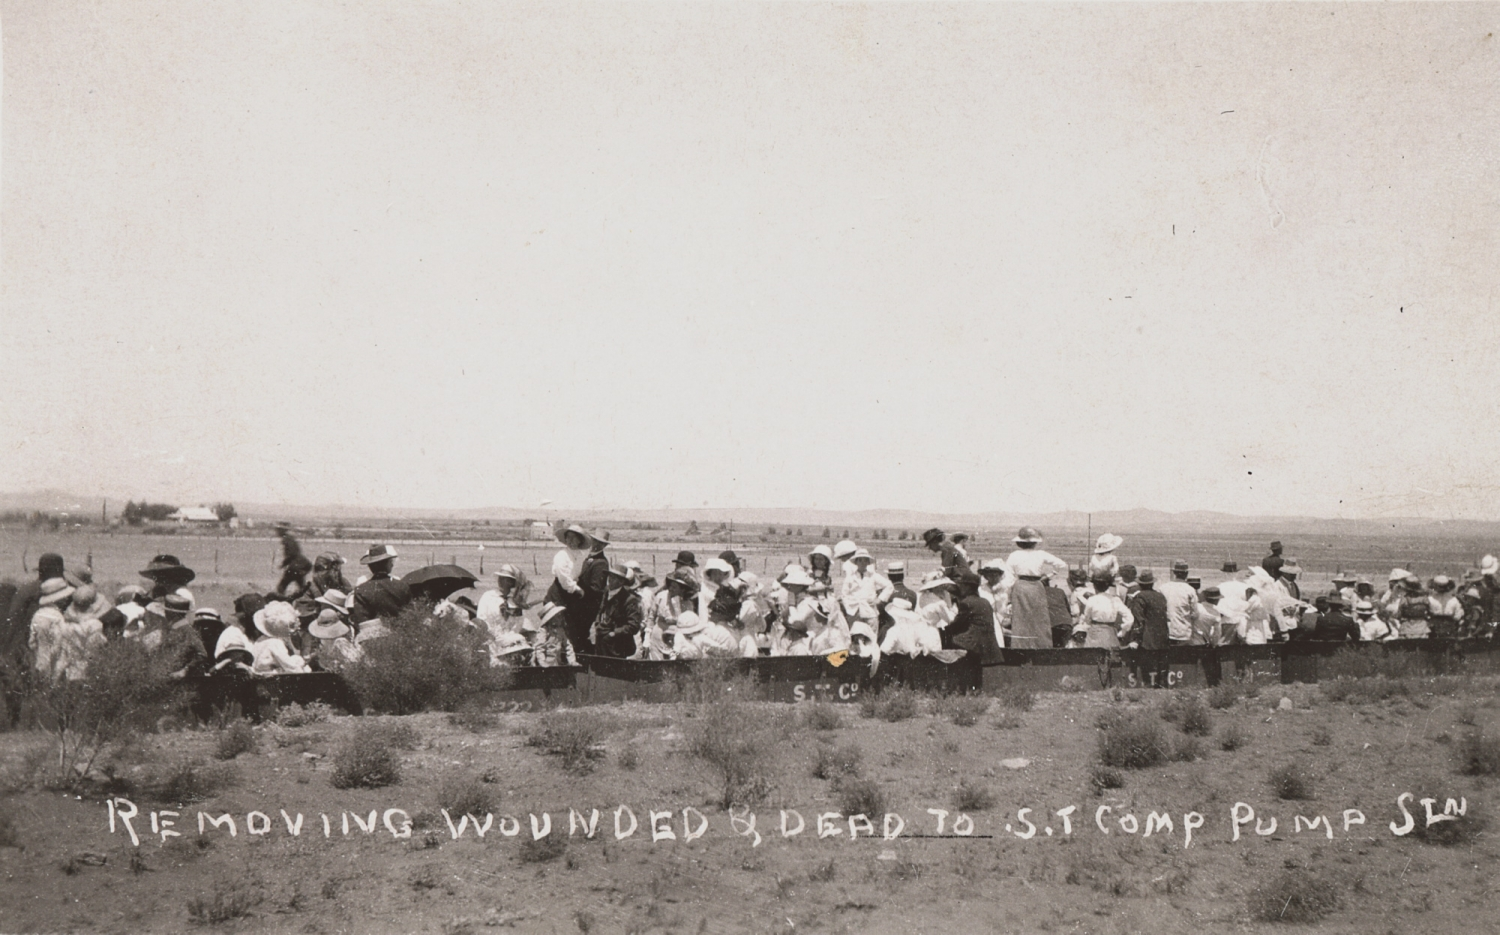 Line of people in outback setting on train line.